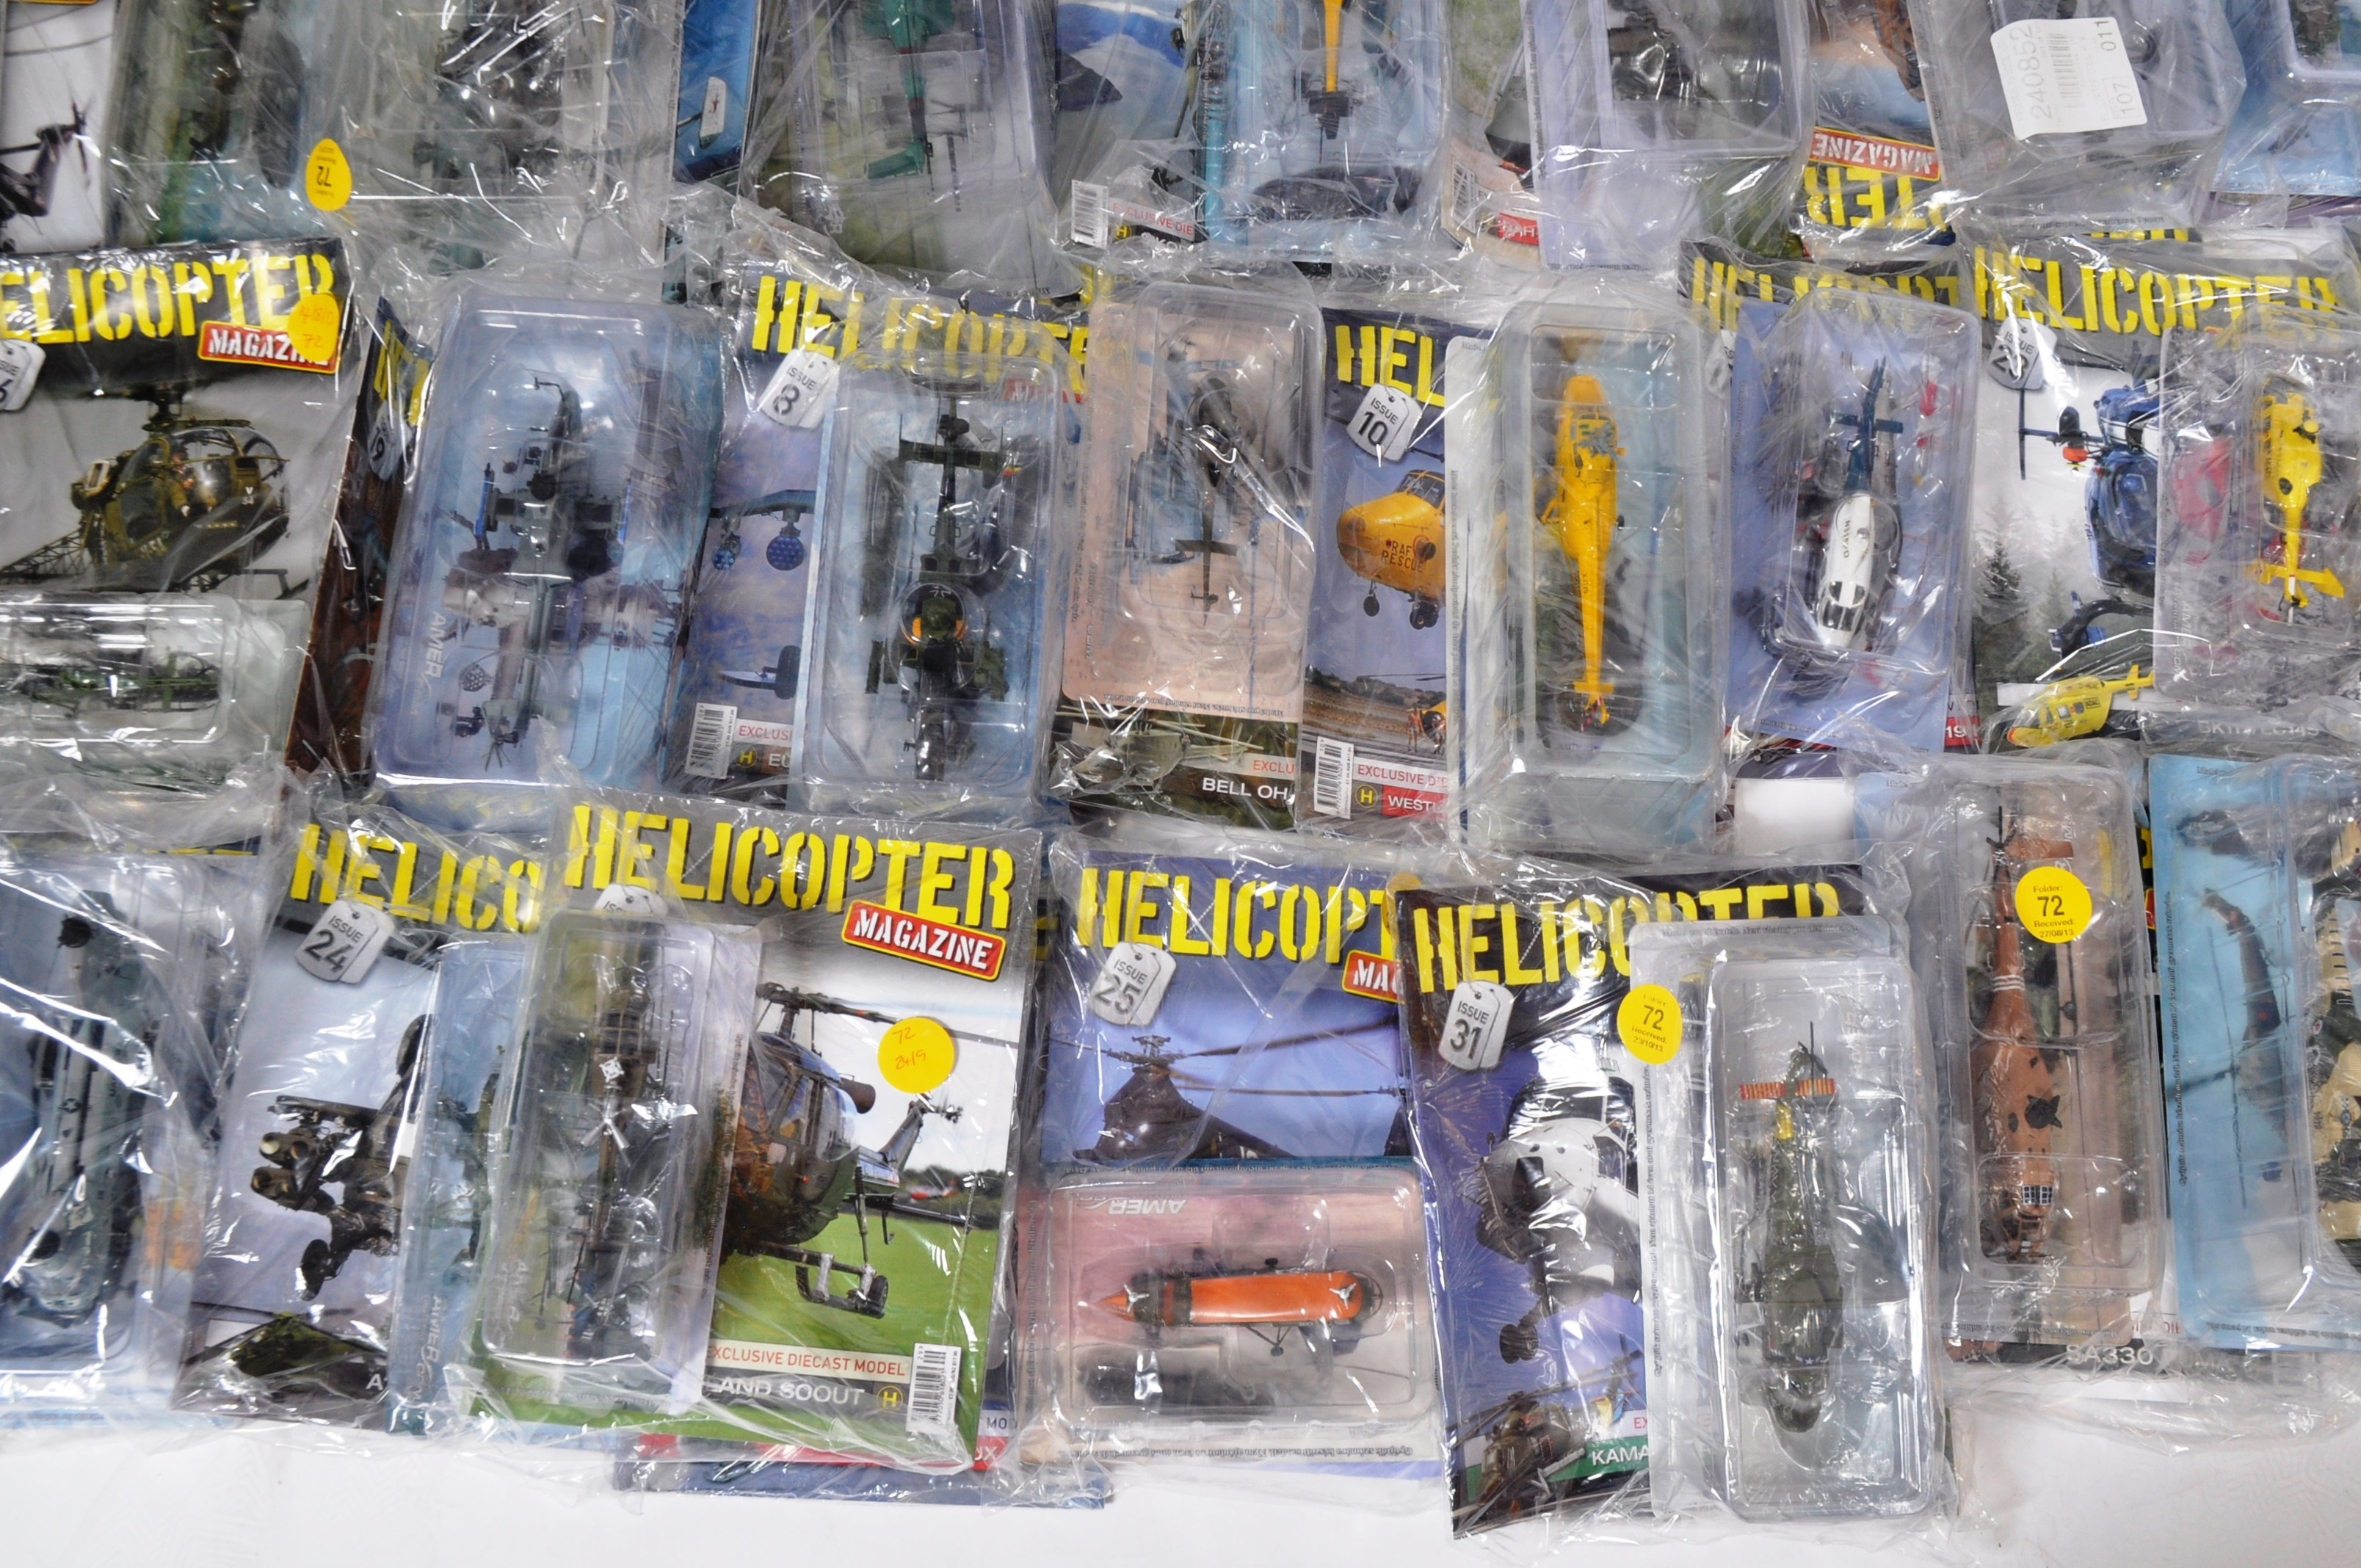 COLLECTION OF ASSORTED HELICOPTER DIECAST AND MAGAZINES - Image 3 of 8